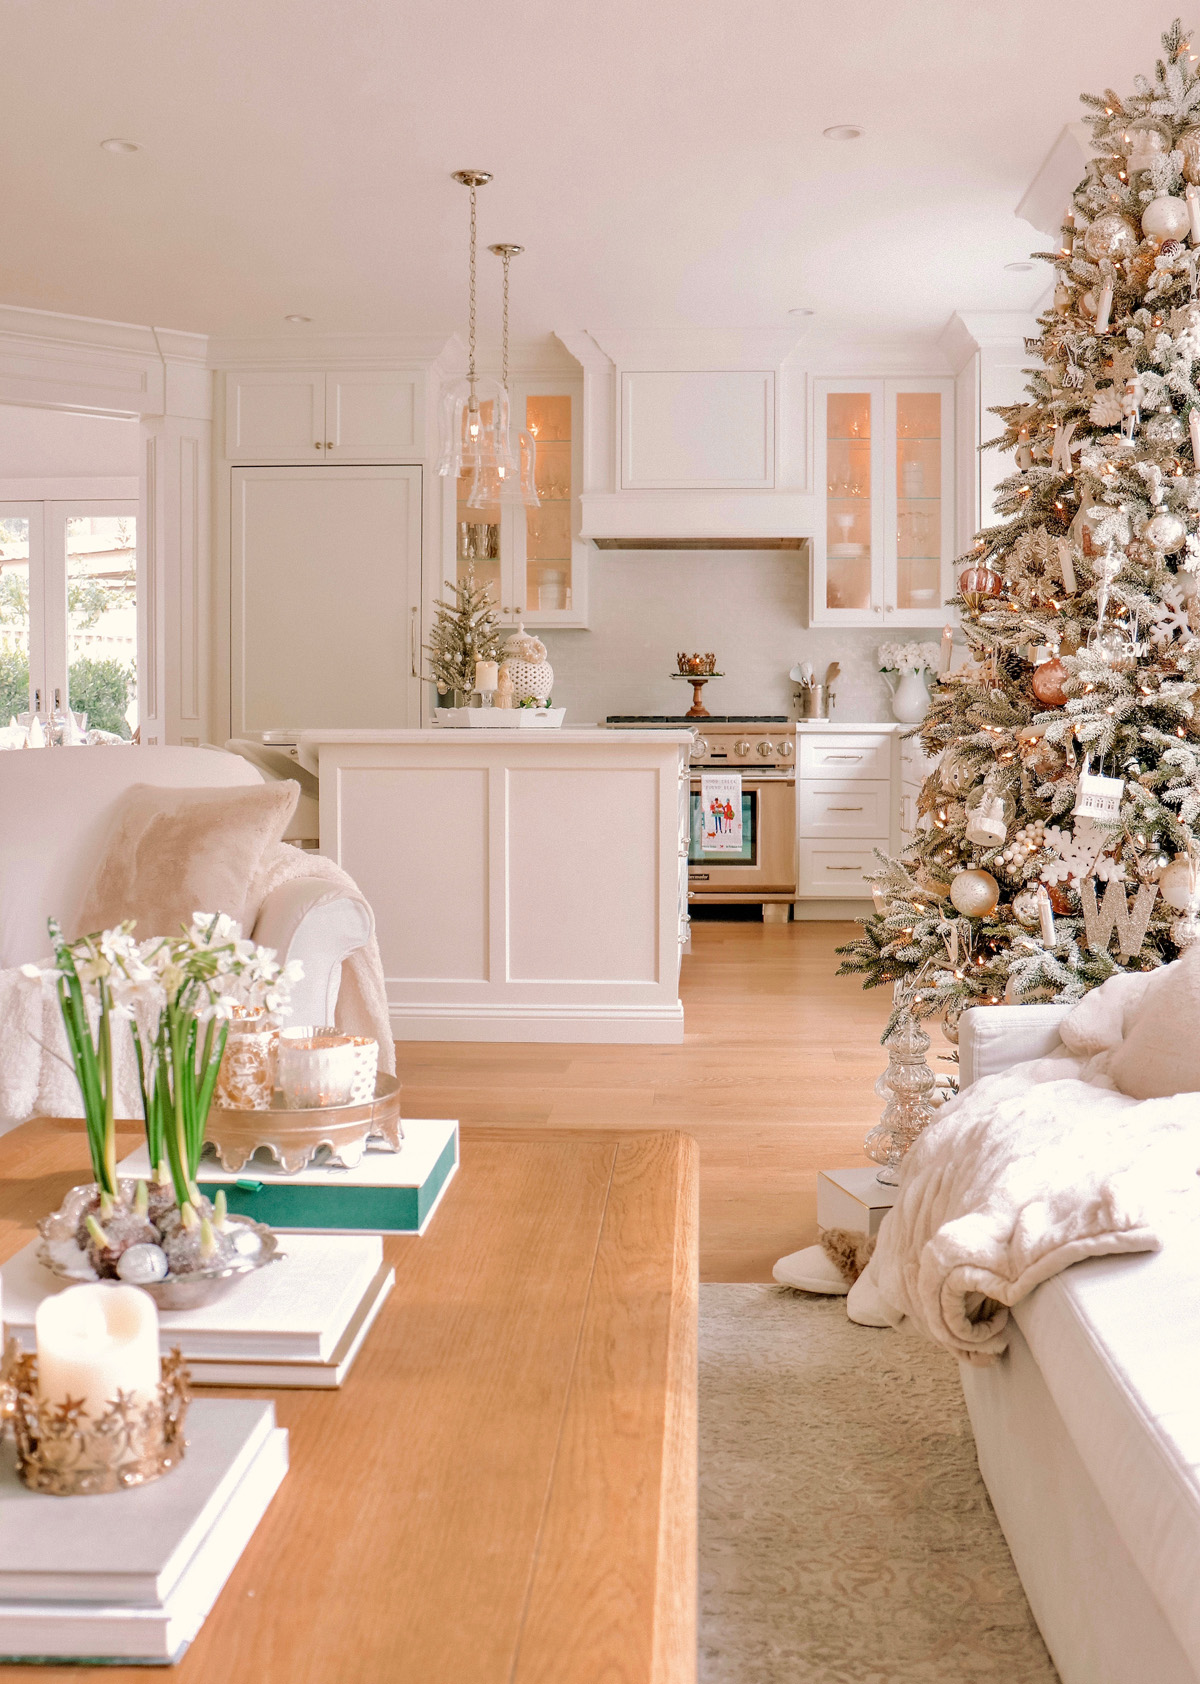 Cozy Holiday Home Decor - Loveliest Looks of Christmas